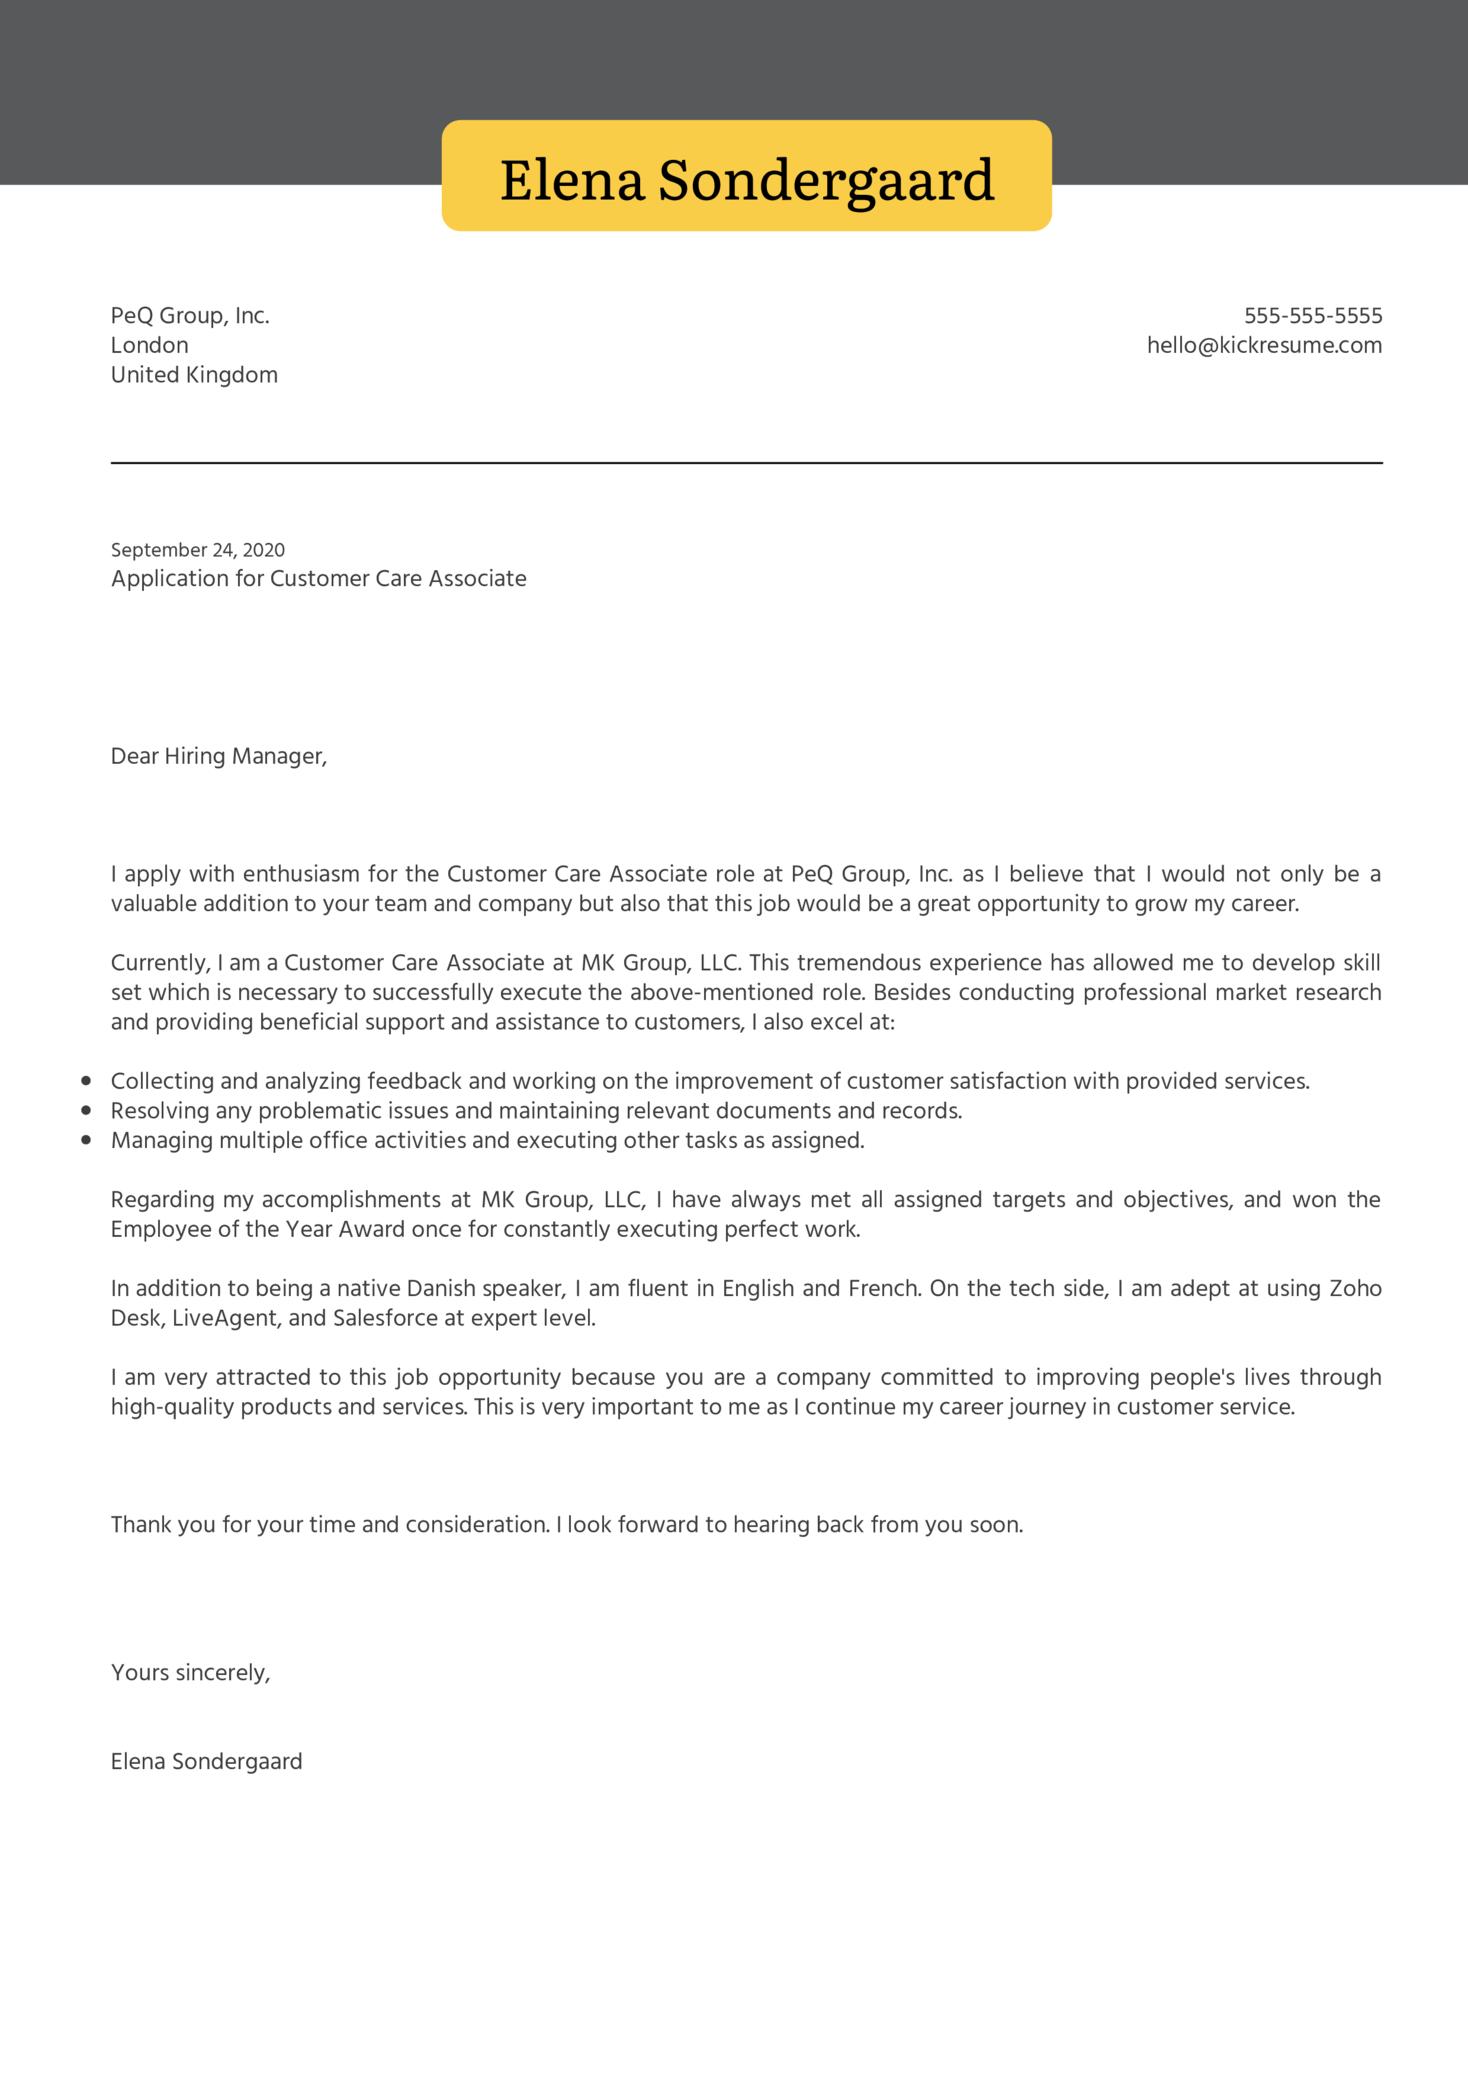 Customer Care Associate Cover Letter Example